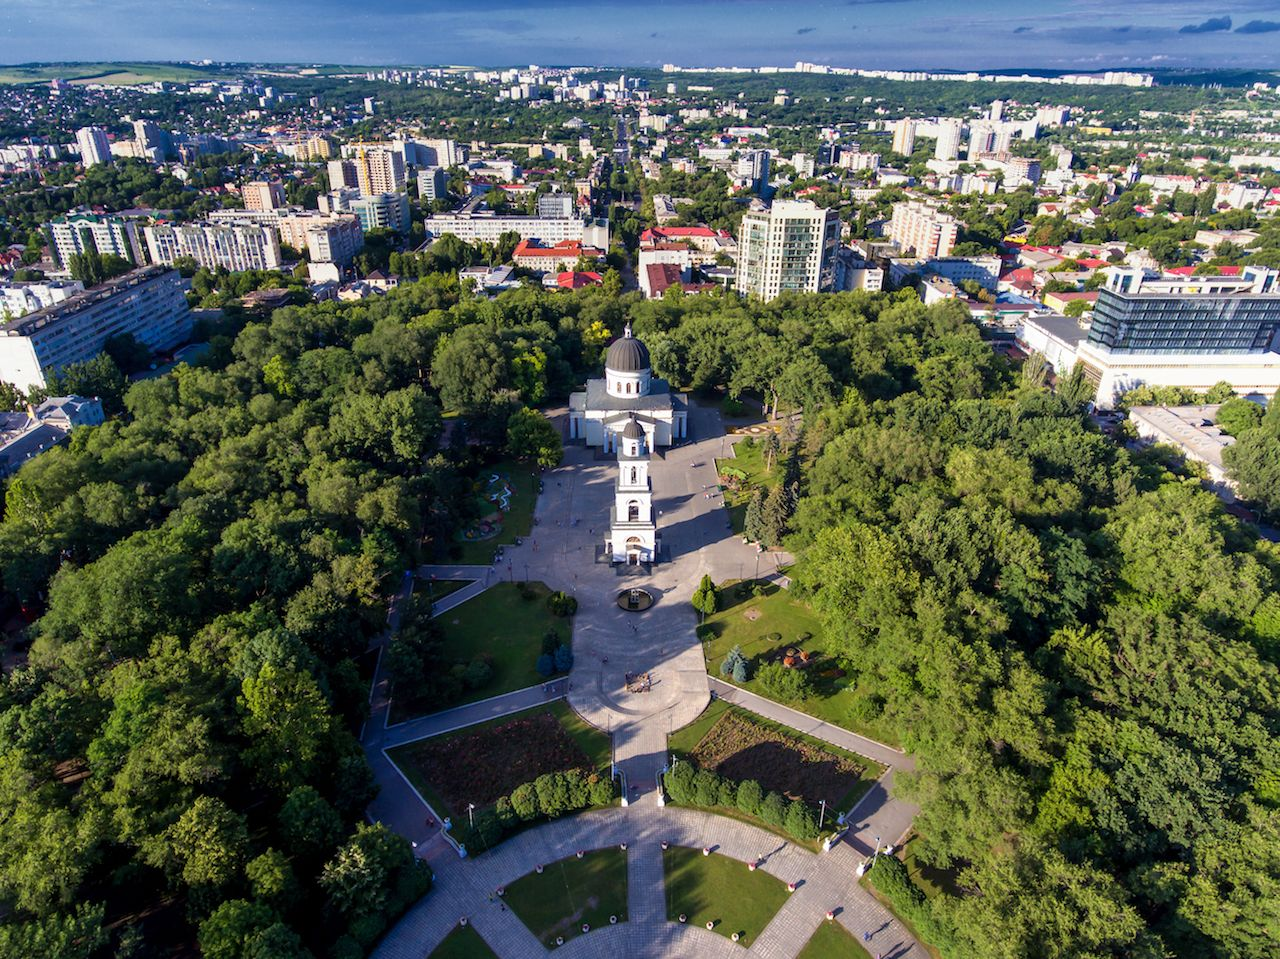 Chisinau, the capital city of the Republic of Moldova